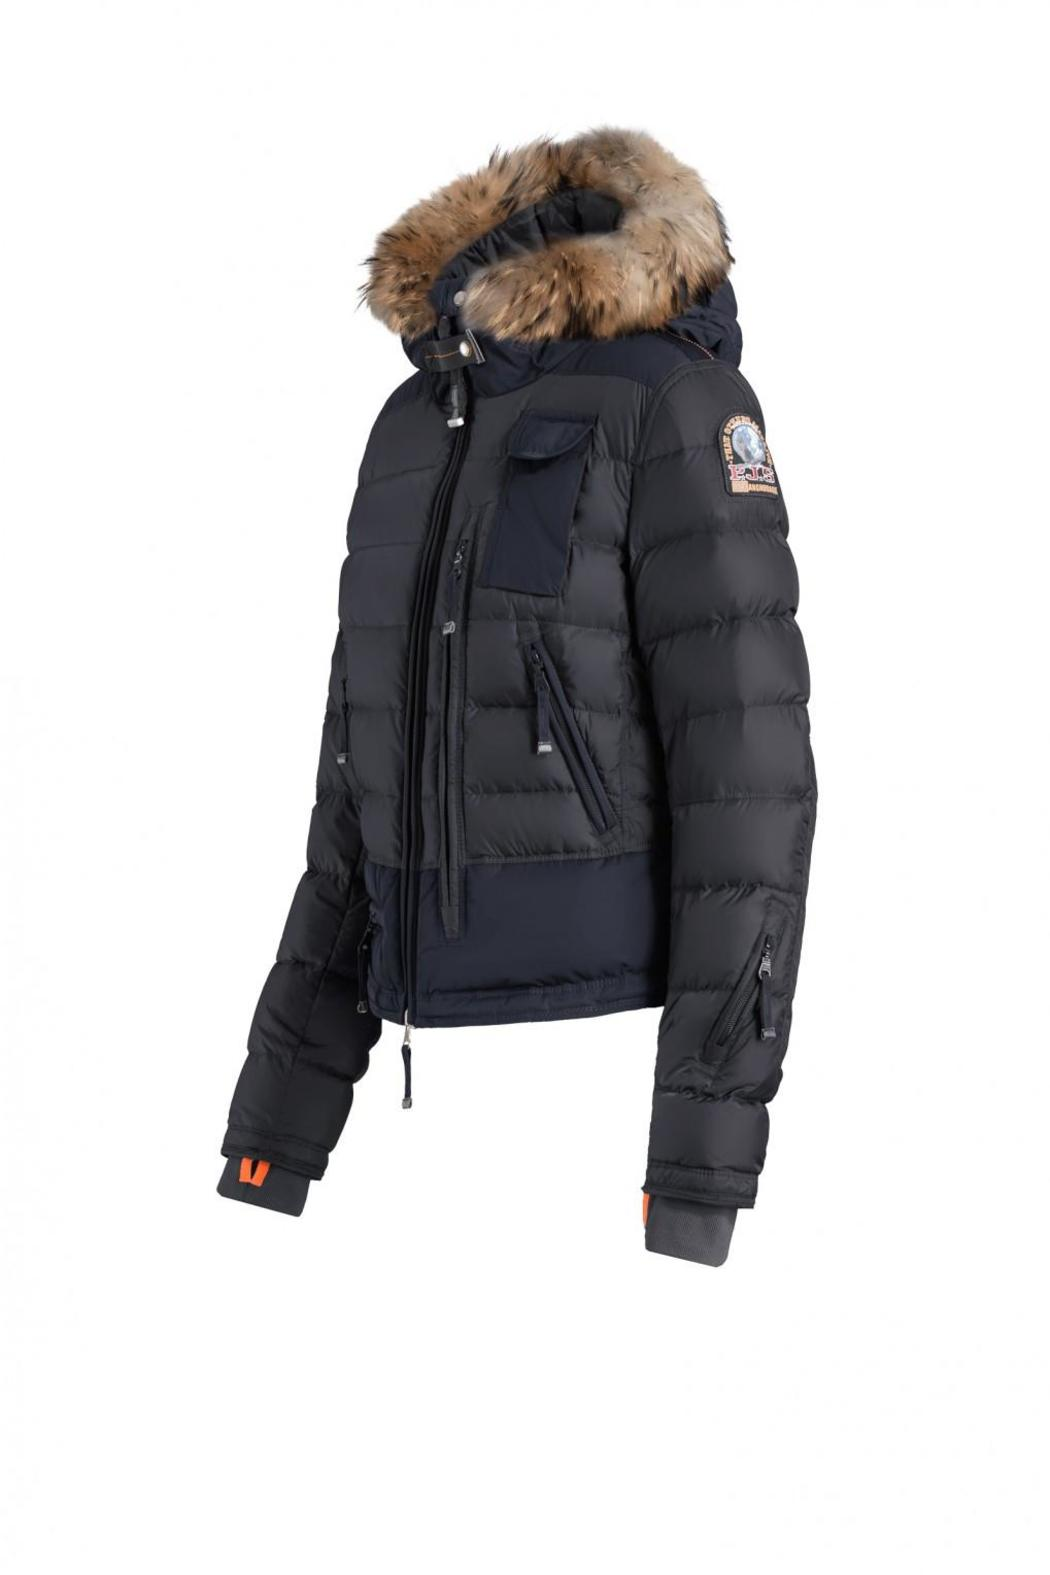 parajumpers kodiak jacket mens navy; parajumpers skimaster down jacket front full image